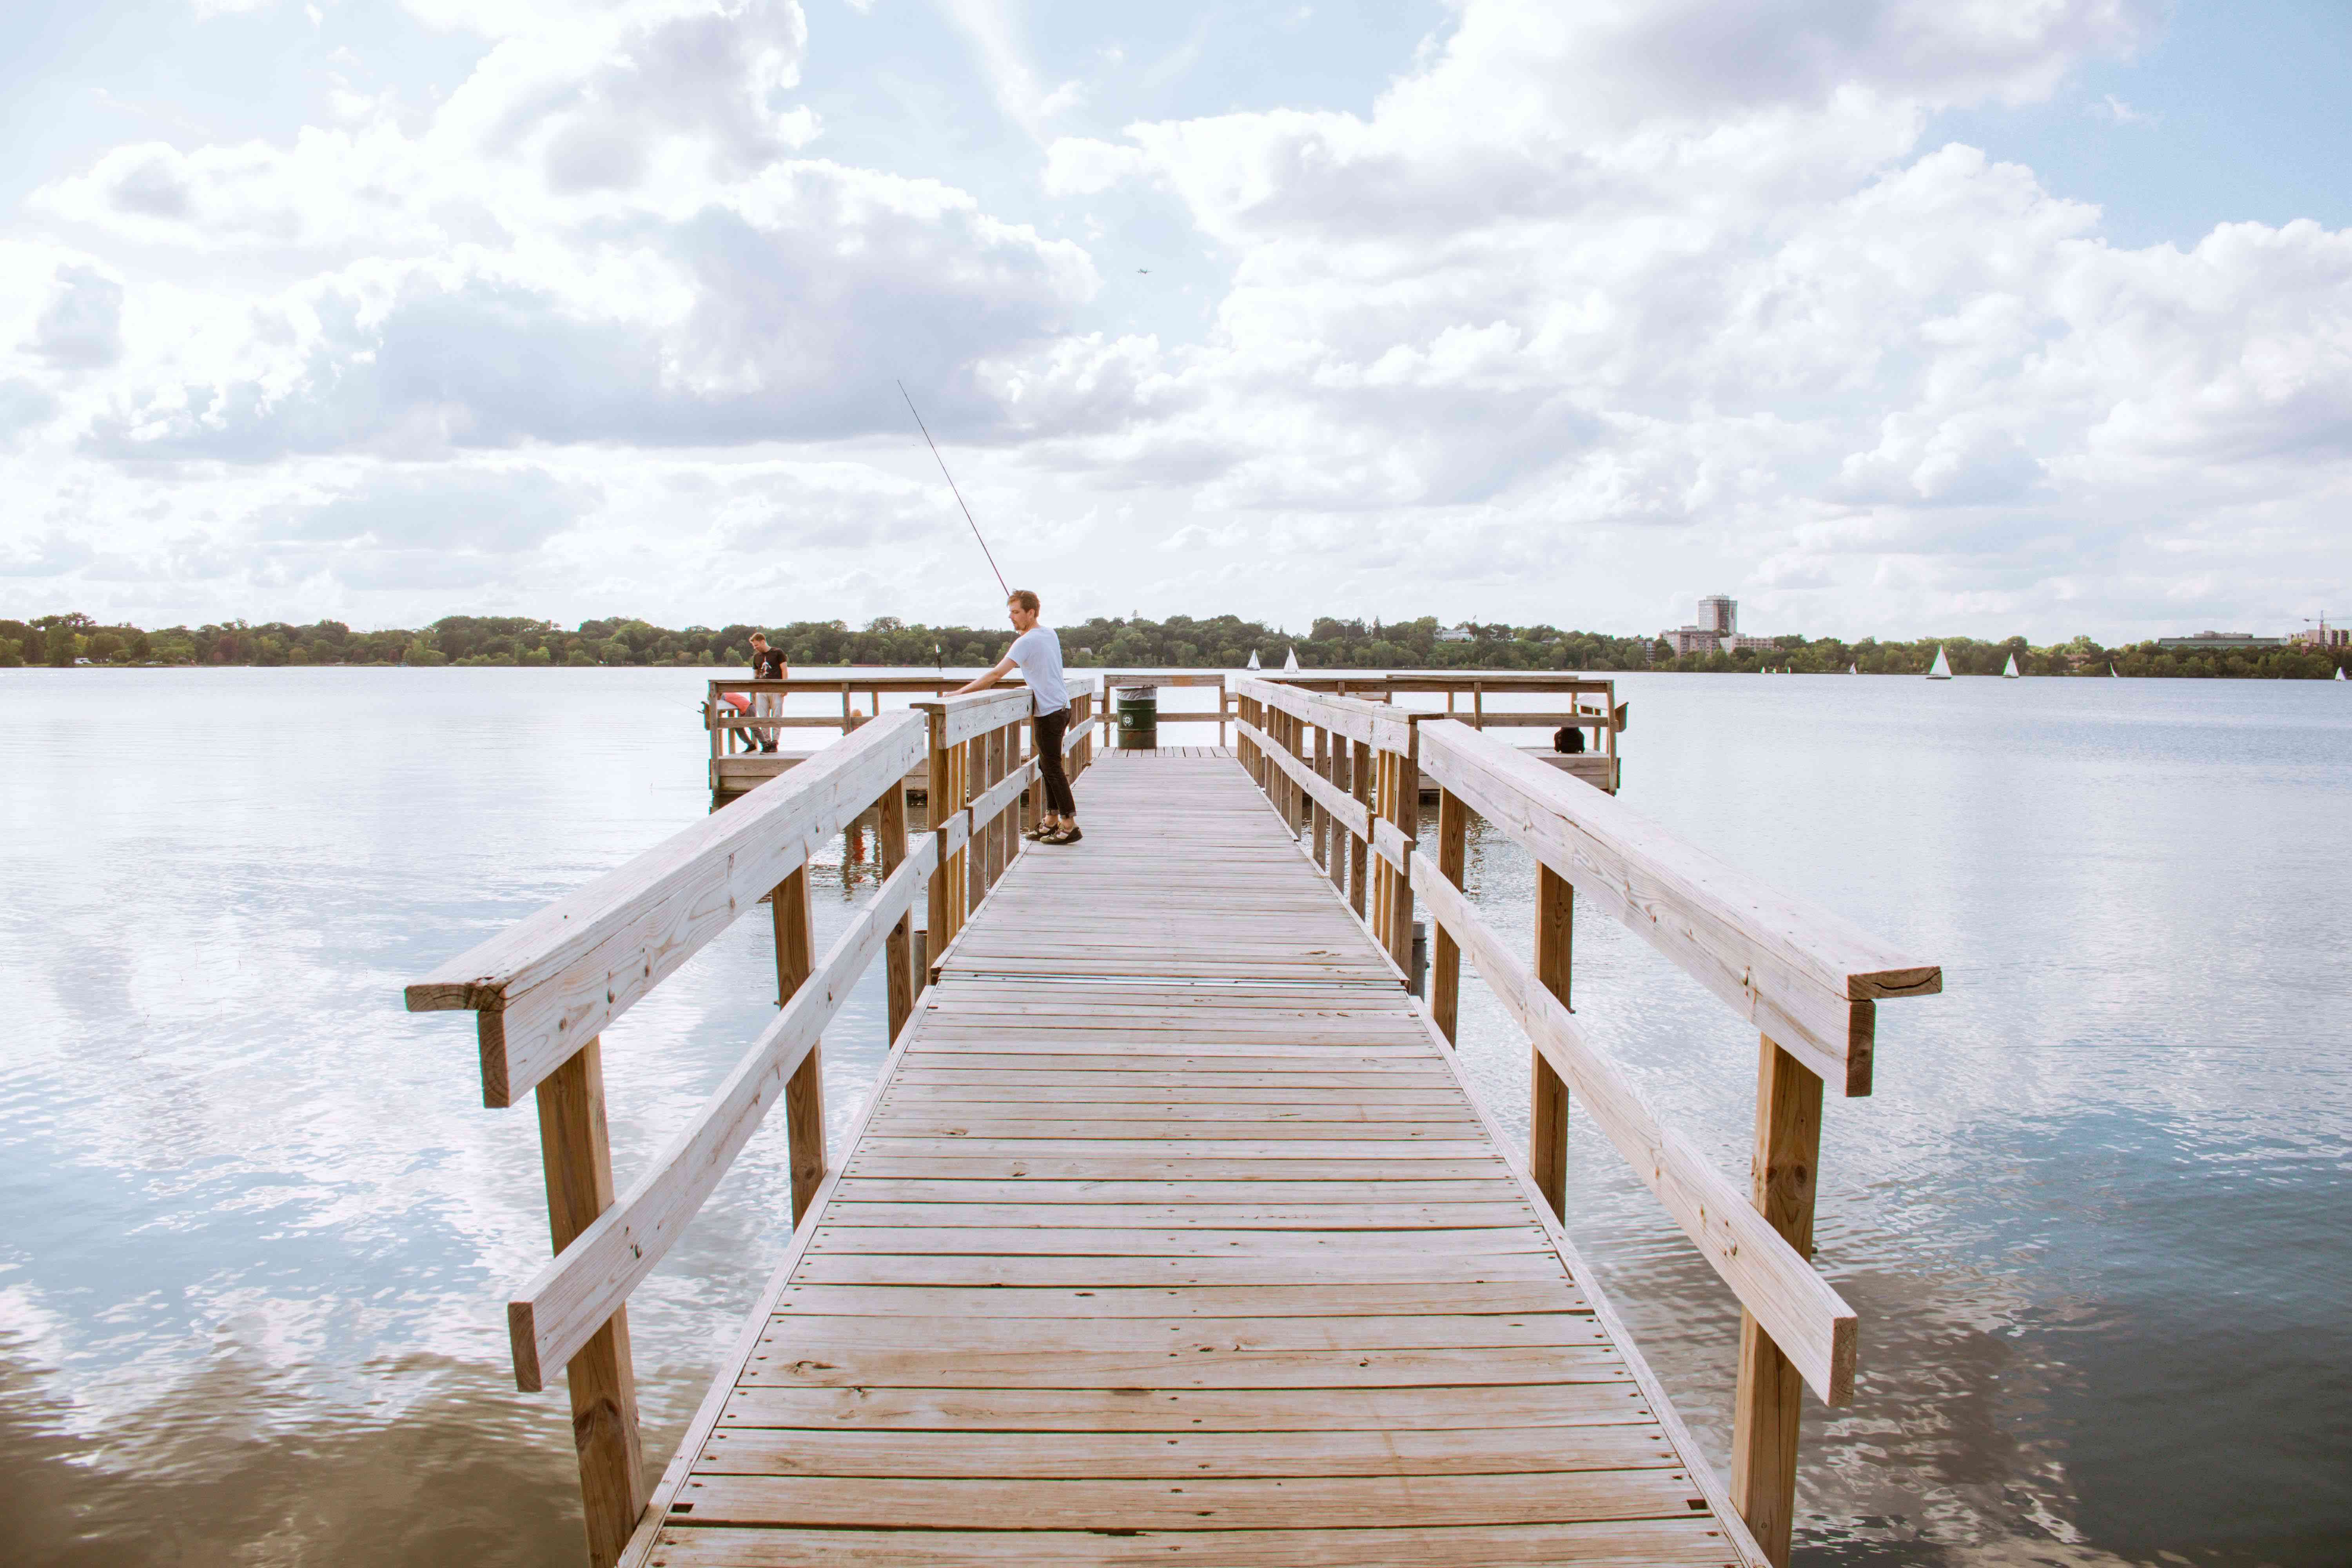 A dock stretching into the waters of Lake Calhoun with a person fishing at the end of it